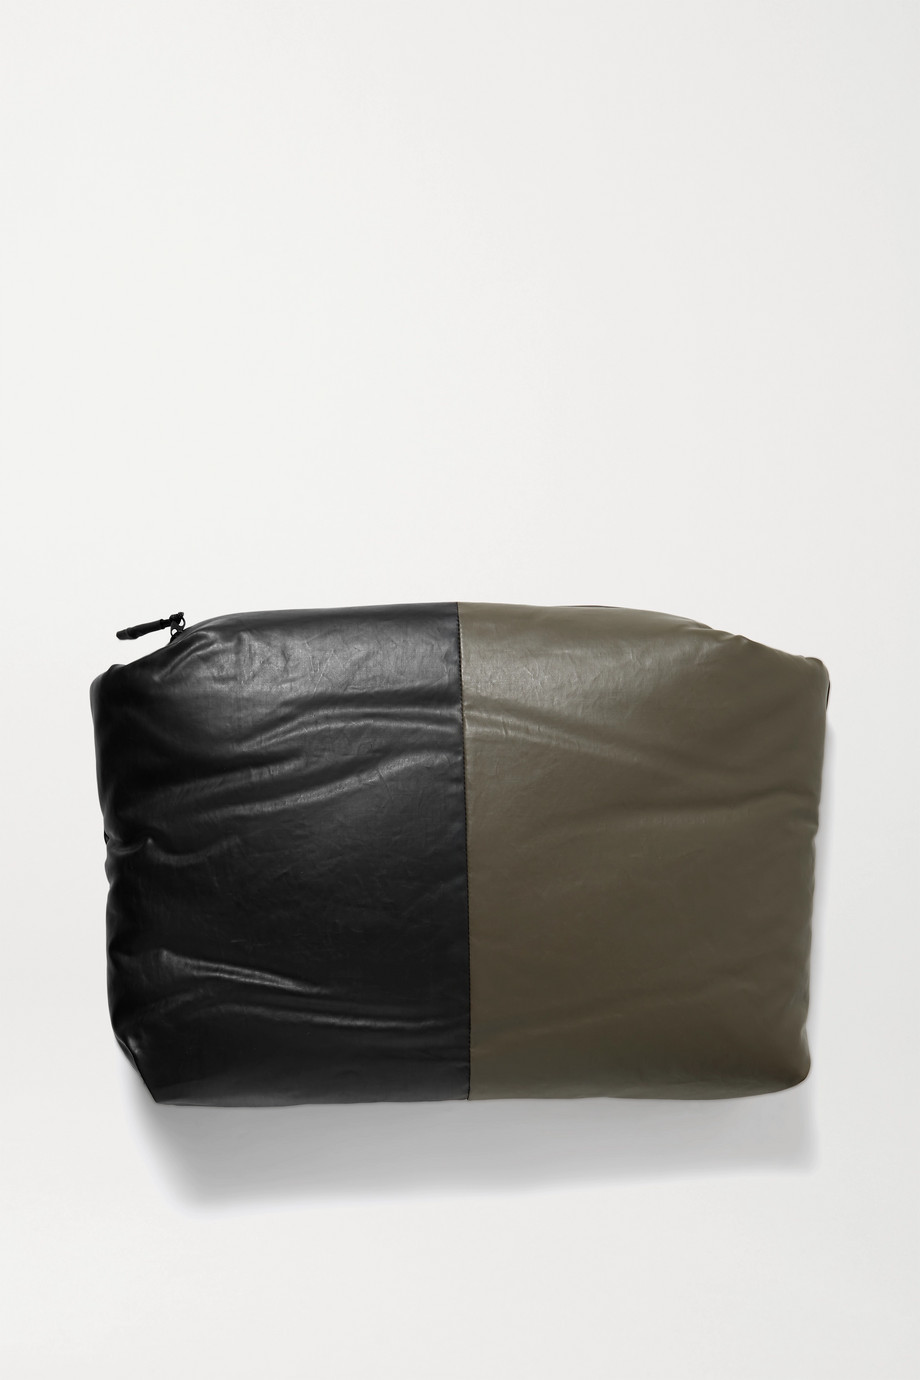 Kassl Editions Padded two-tone coated cotton-blend clutch